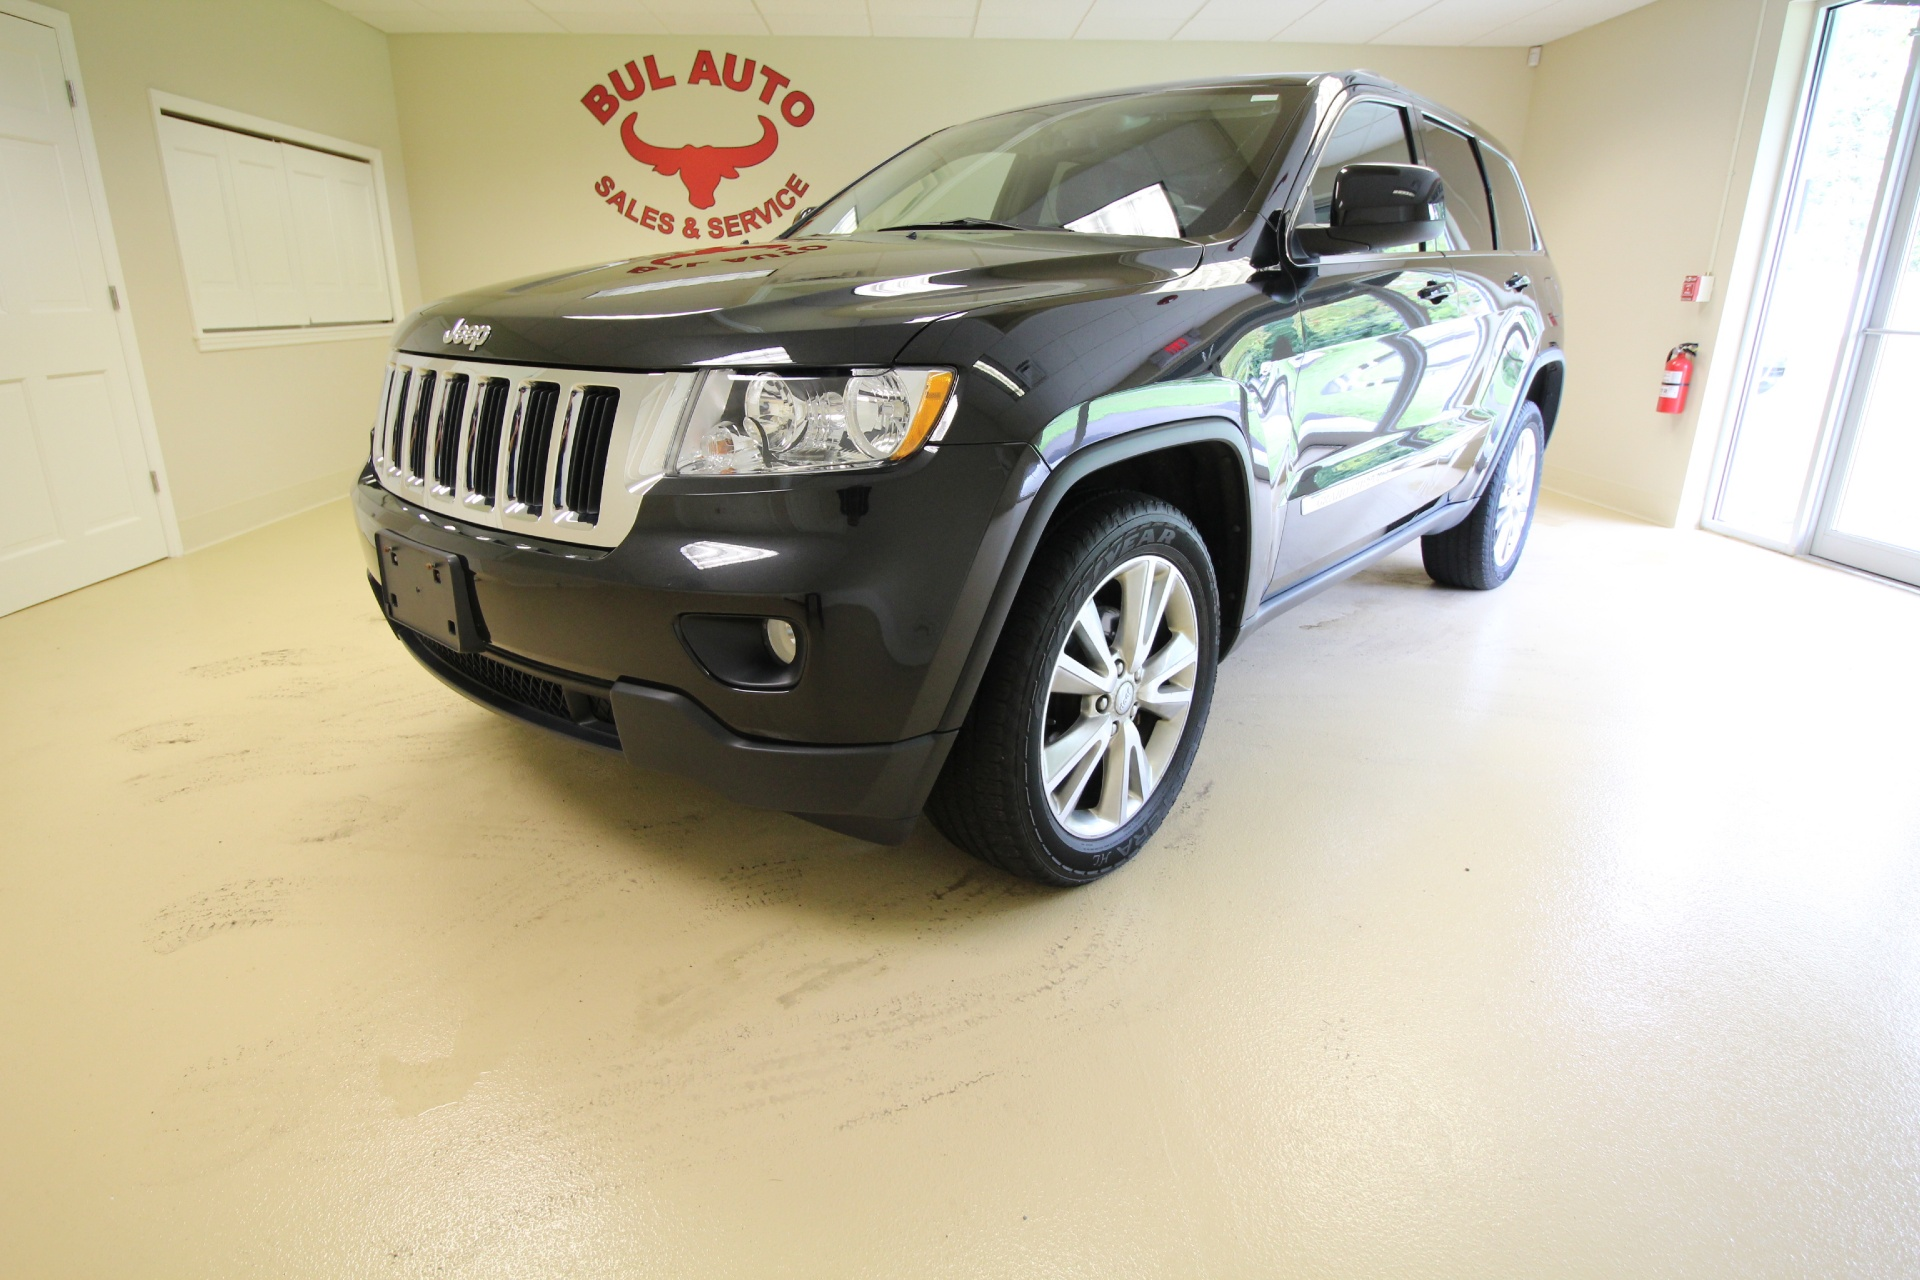 2012 jeep grand cherokee laredo navigation leather rearview back up camera heated seats stock. Black Bedroom Furniture Sets. Home Design Ideas